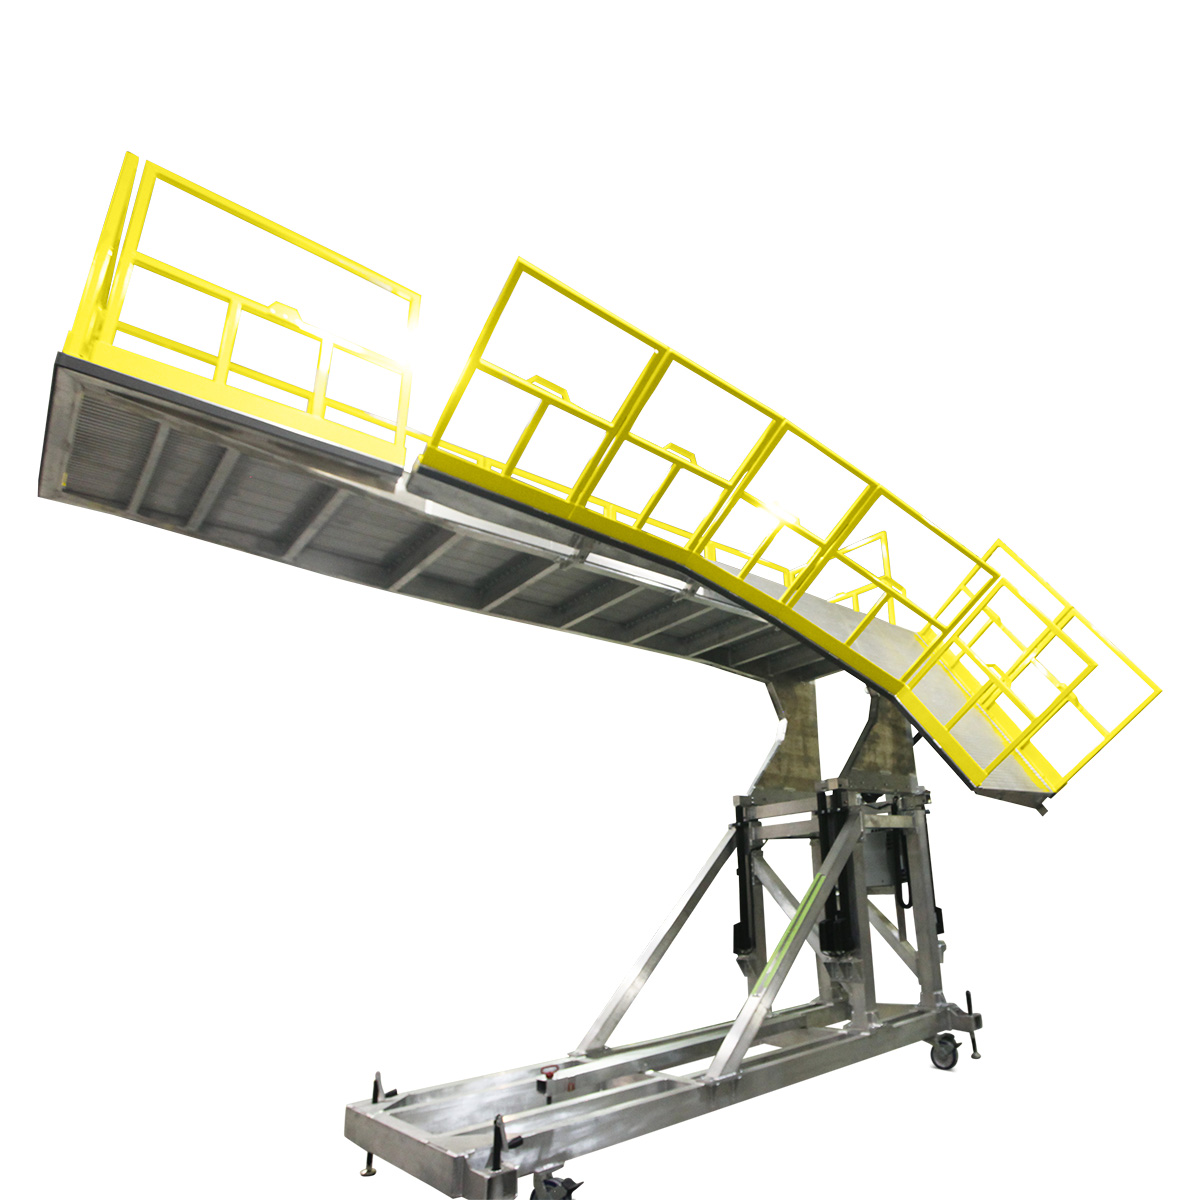 OSHA compliant aluminum work platform with electric height adjustability and custom electric features for extending, retracting and folding decks.